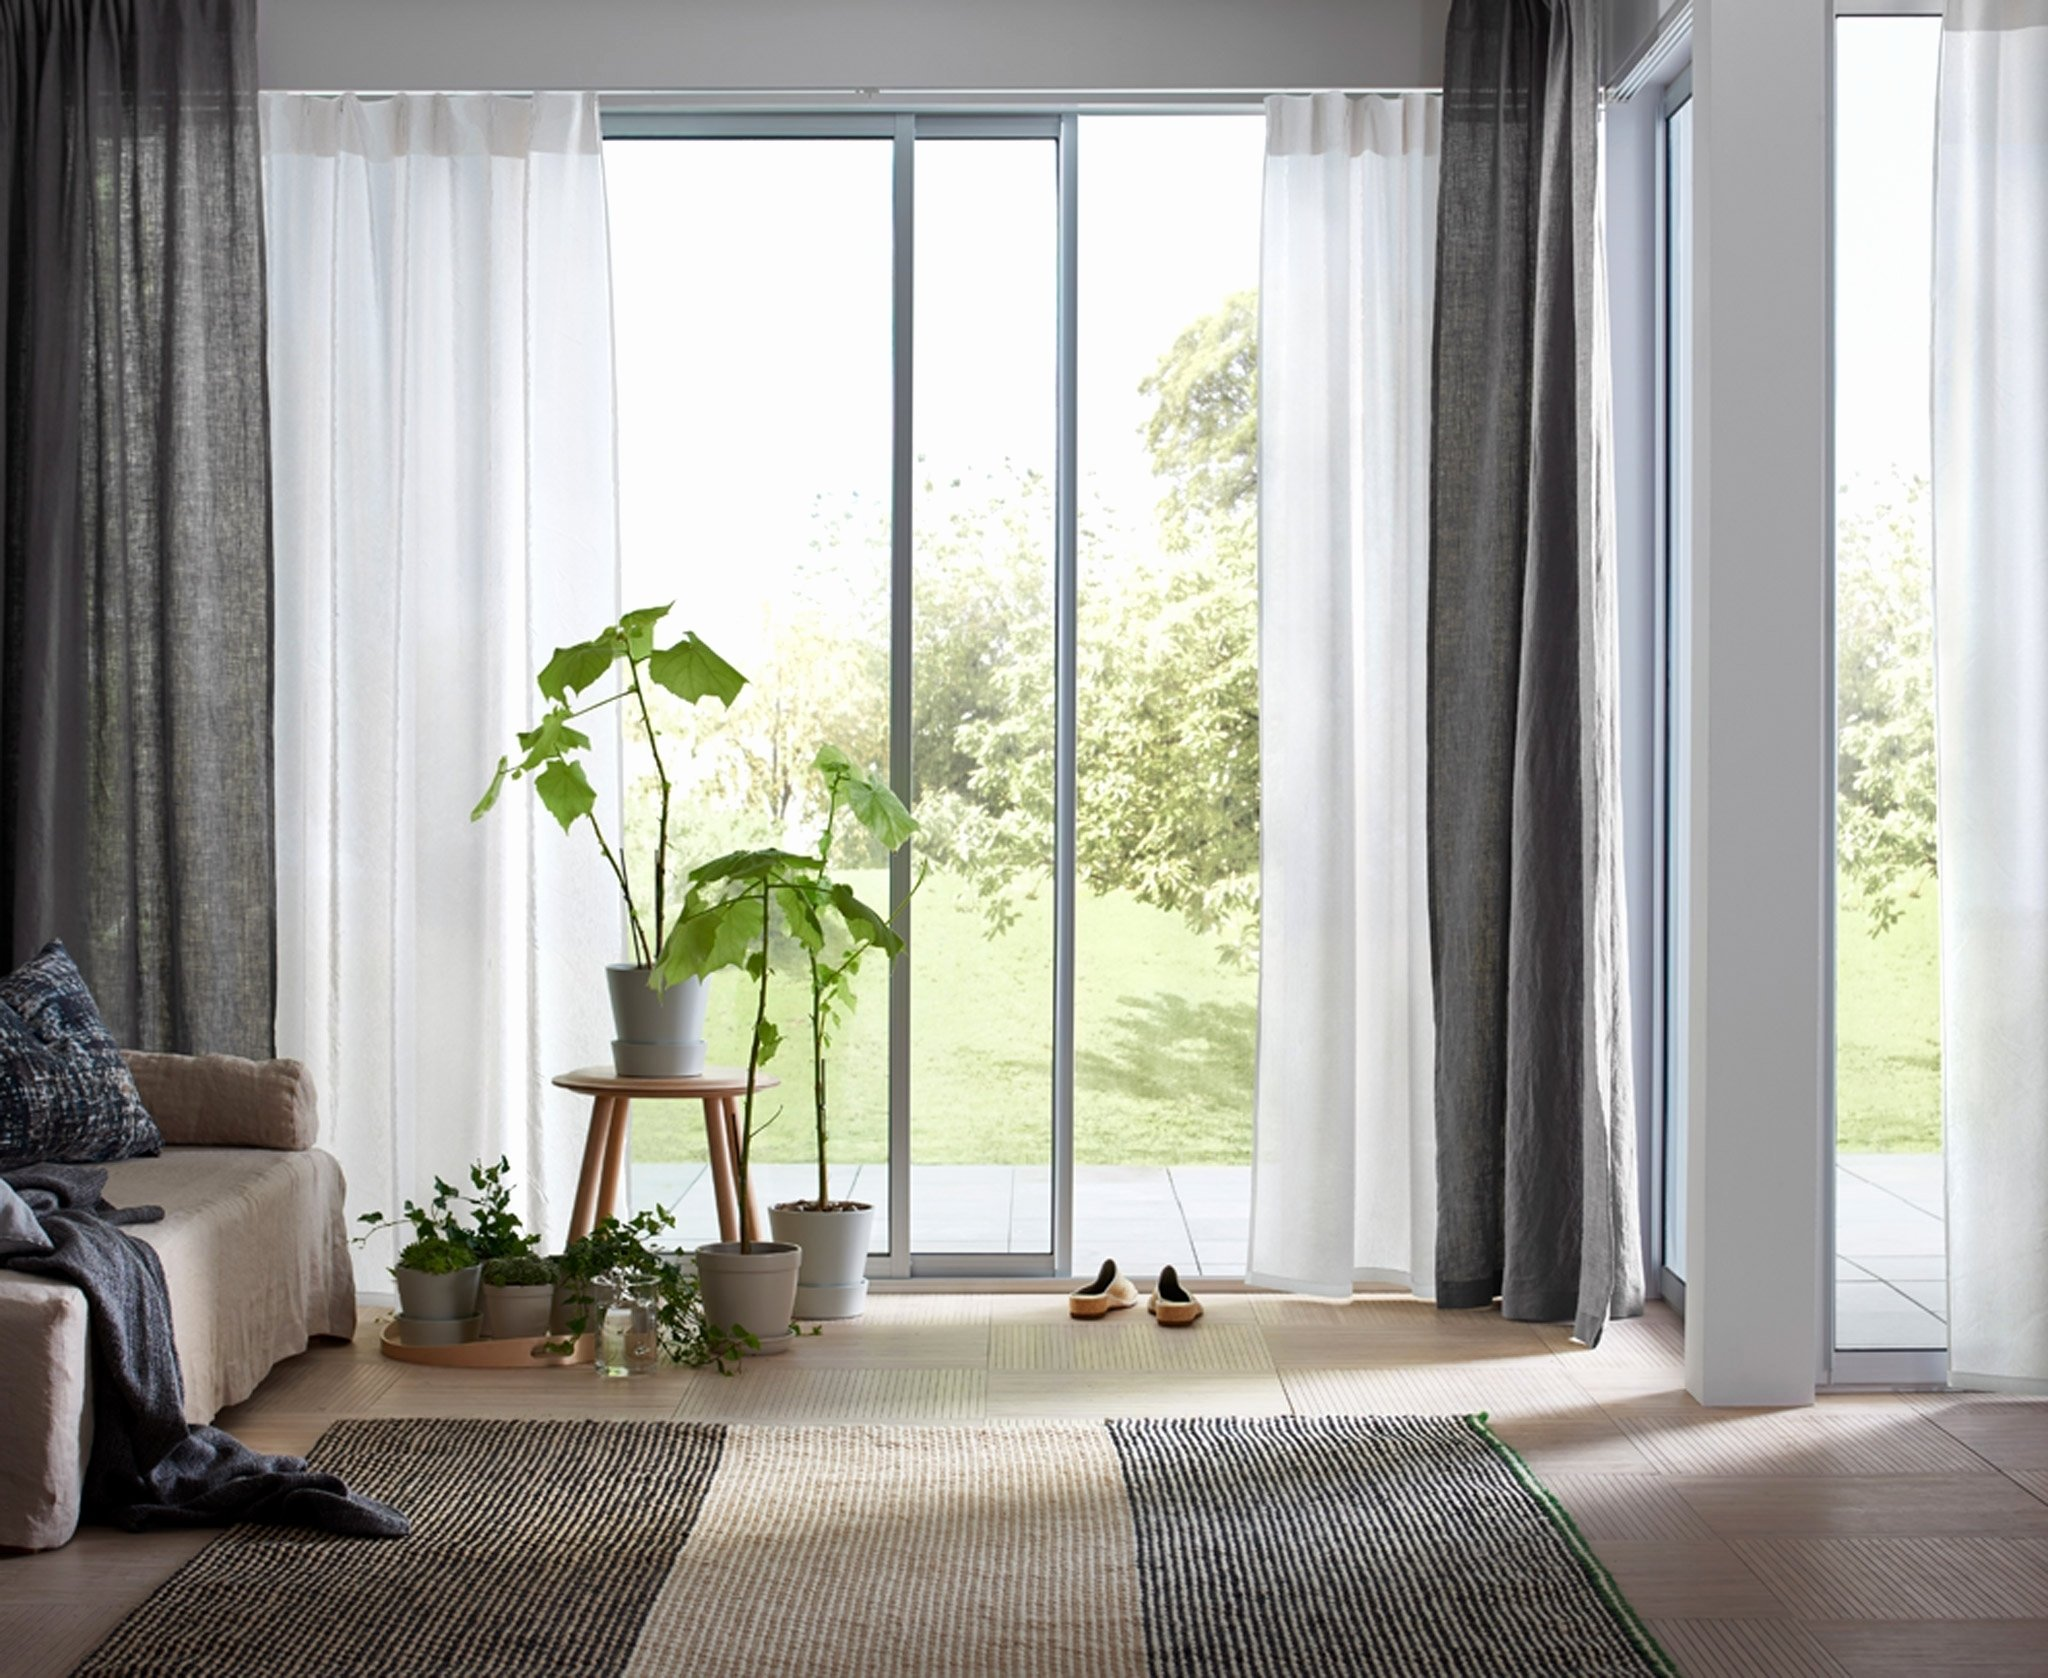 10 Stylish Curtains Ideas For Living Room Modern Curtain Designs Curtain  Design For Living Room Different